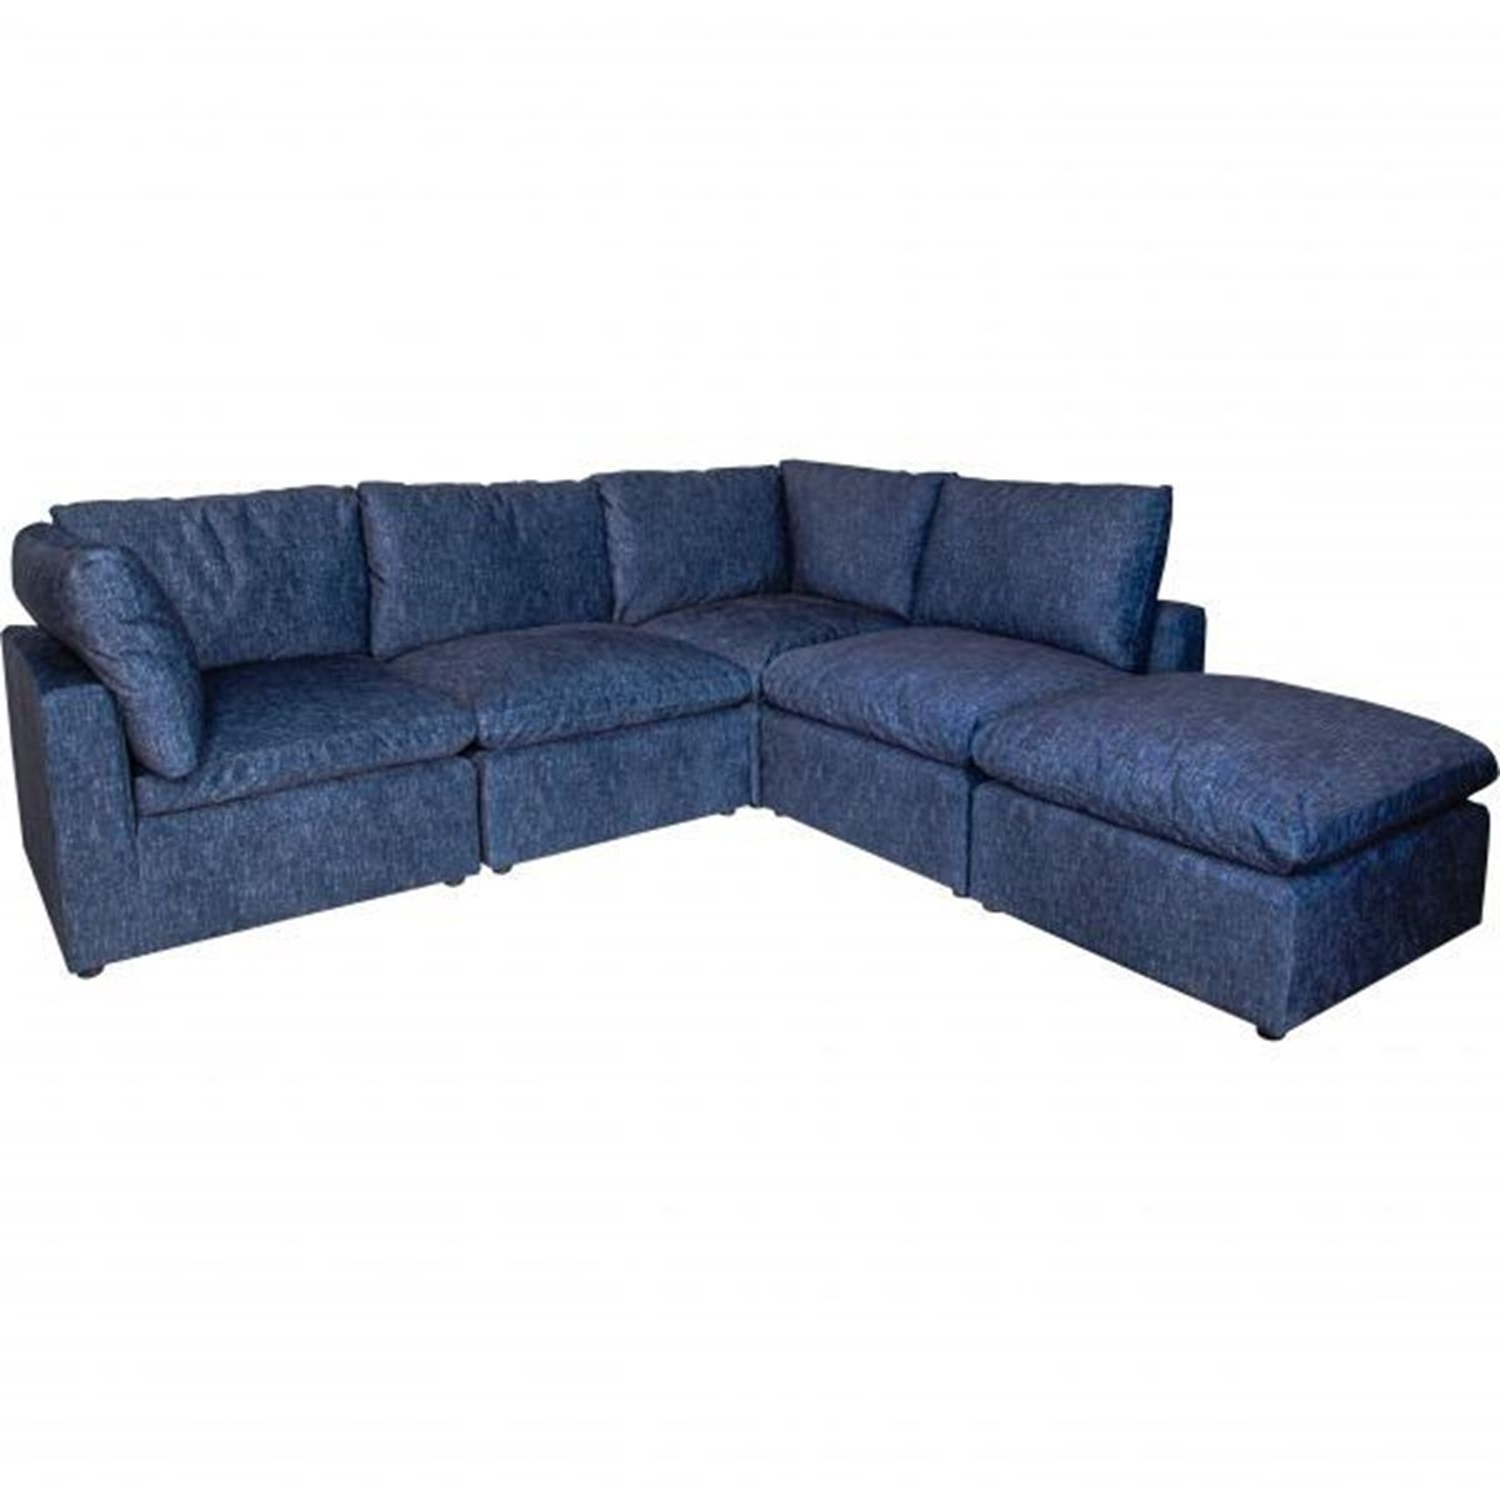 Lush Five Piece Sectional (View 15 of 20)